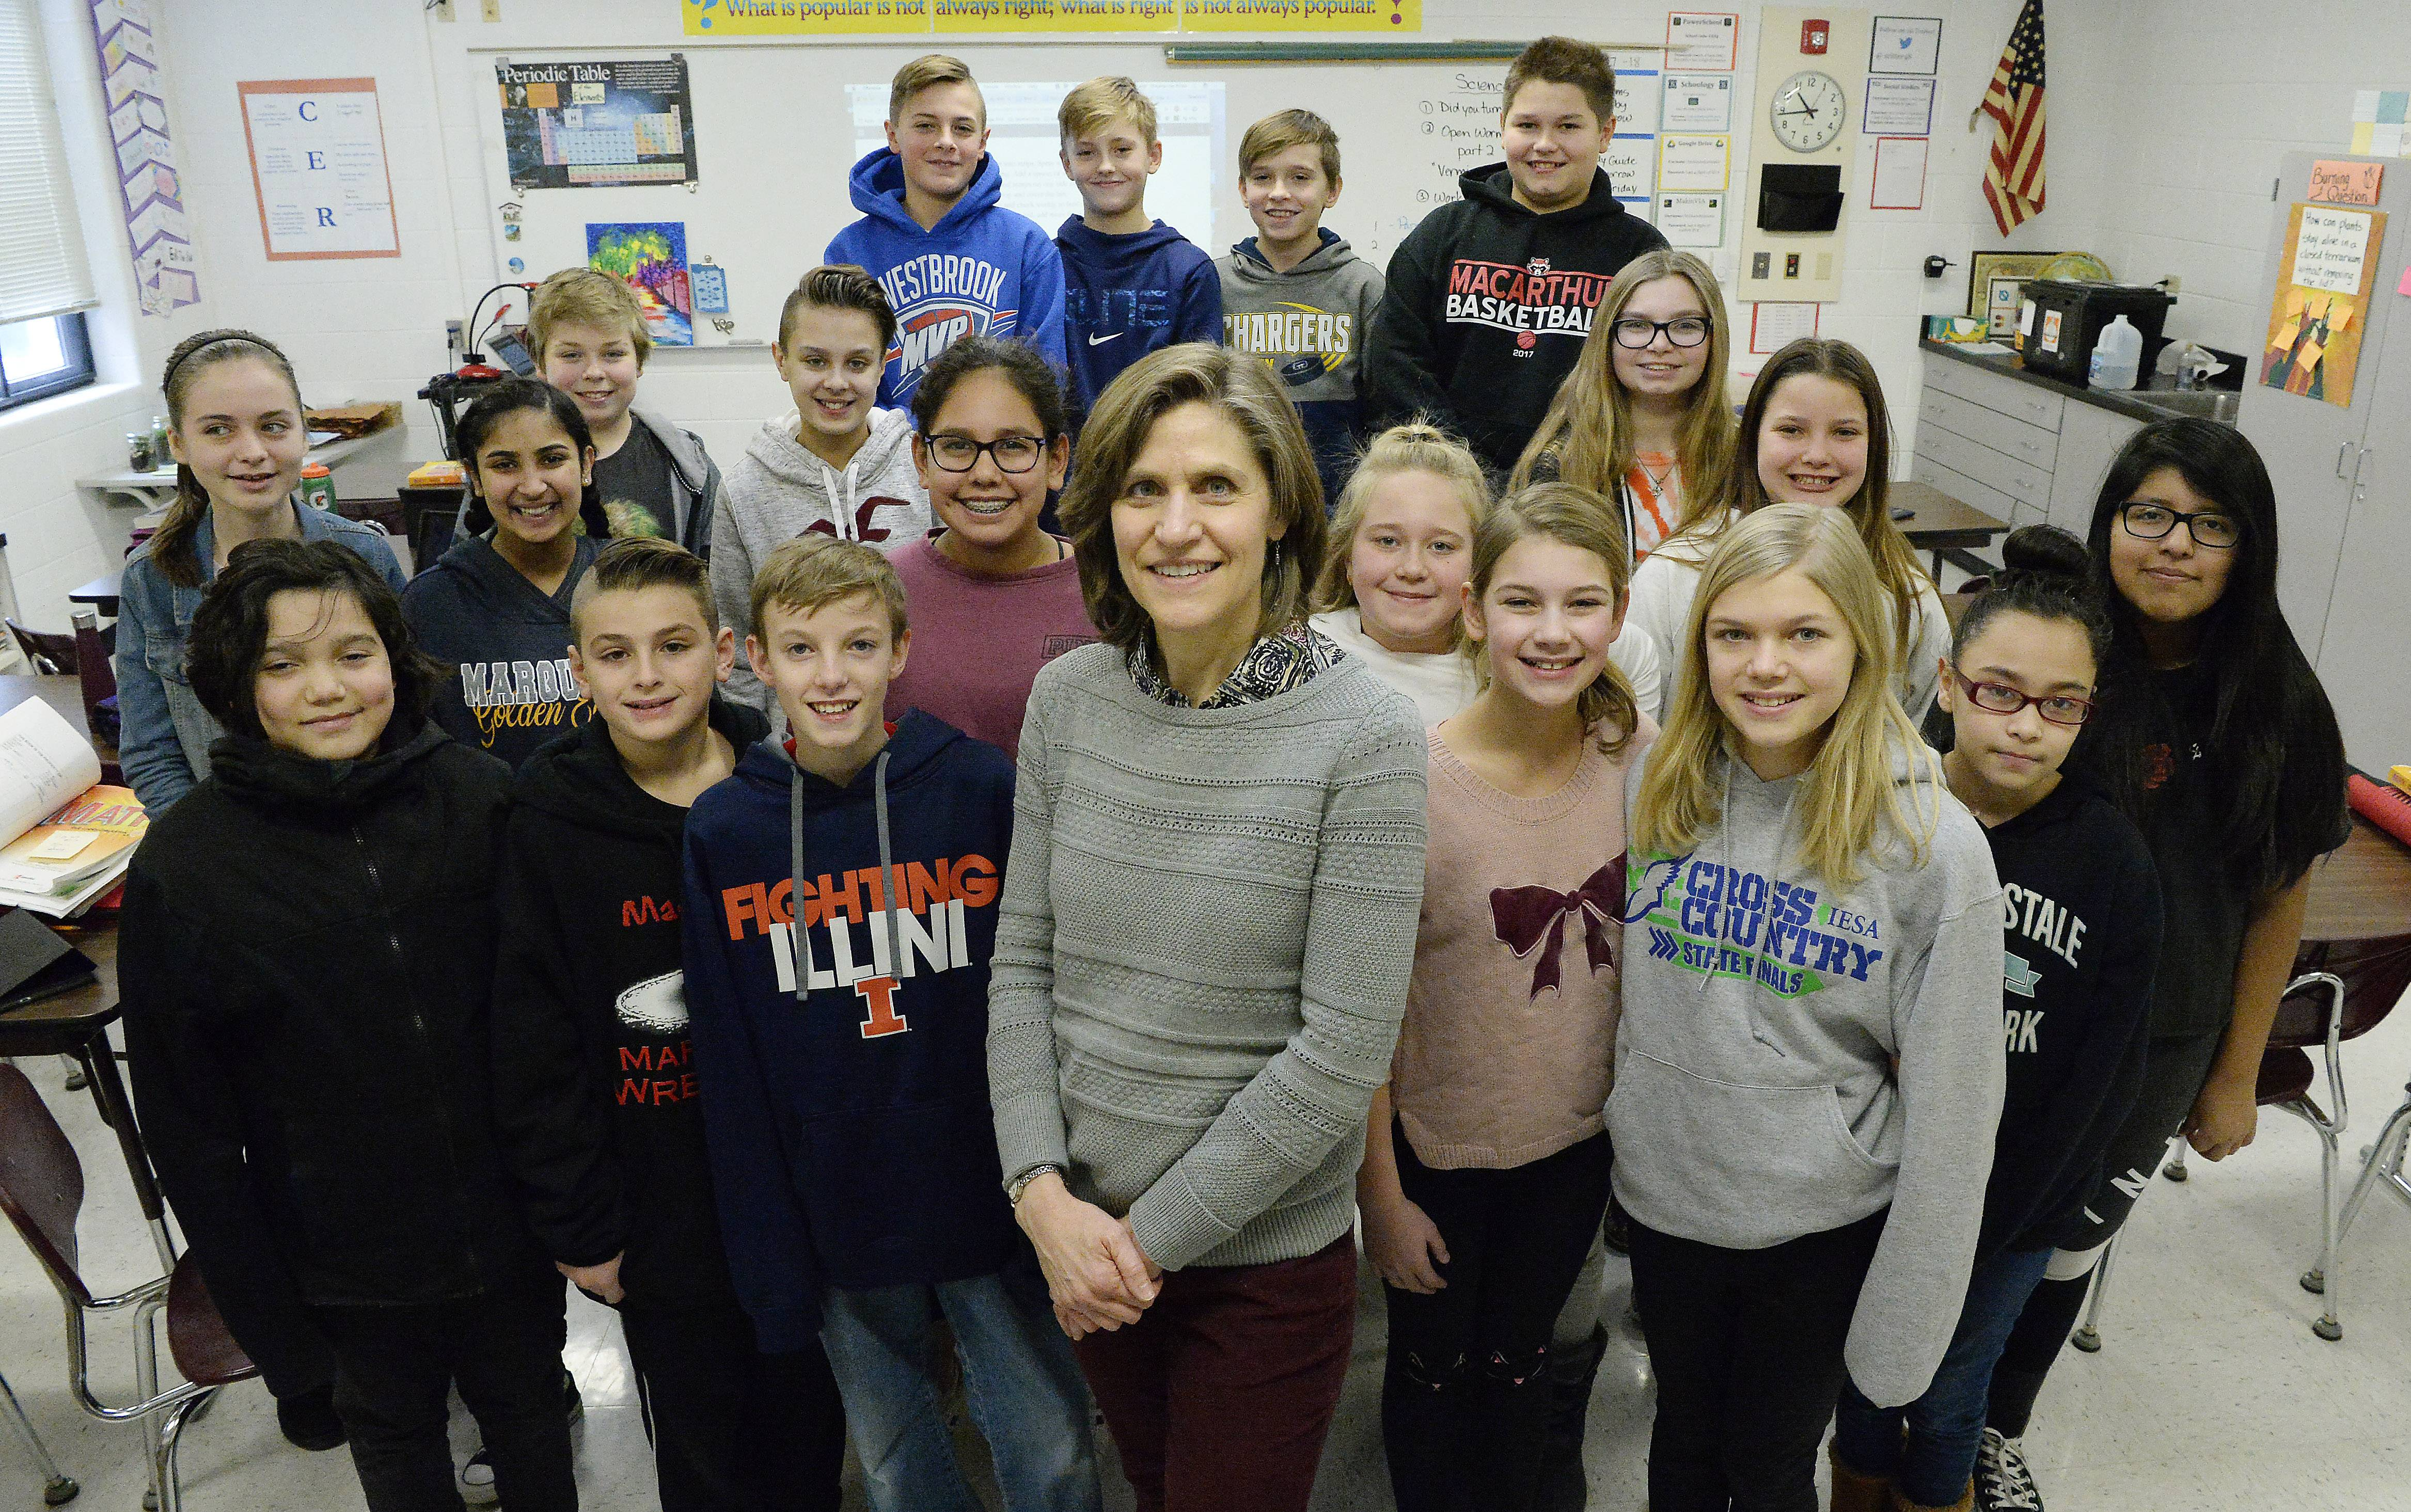 Stephanie Ritter, here with some of her sixth-grade students at MacArthur Middle School in Prospect Heights, worked in advertising for seven years before launching a second career as a teacher.